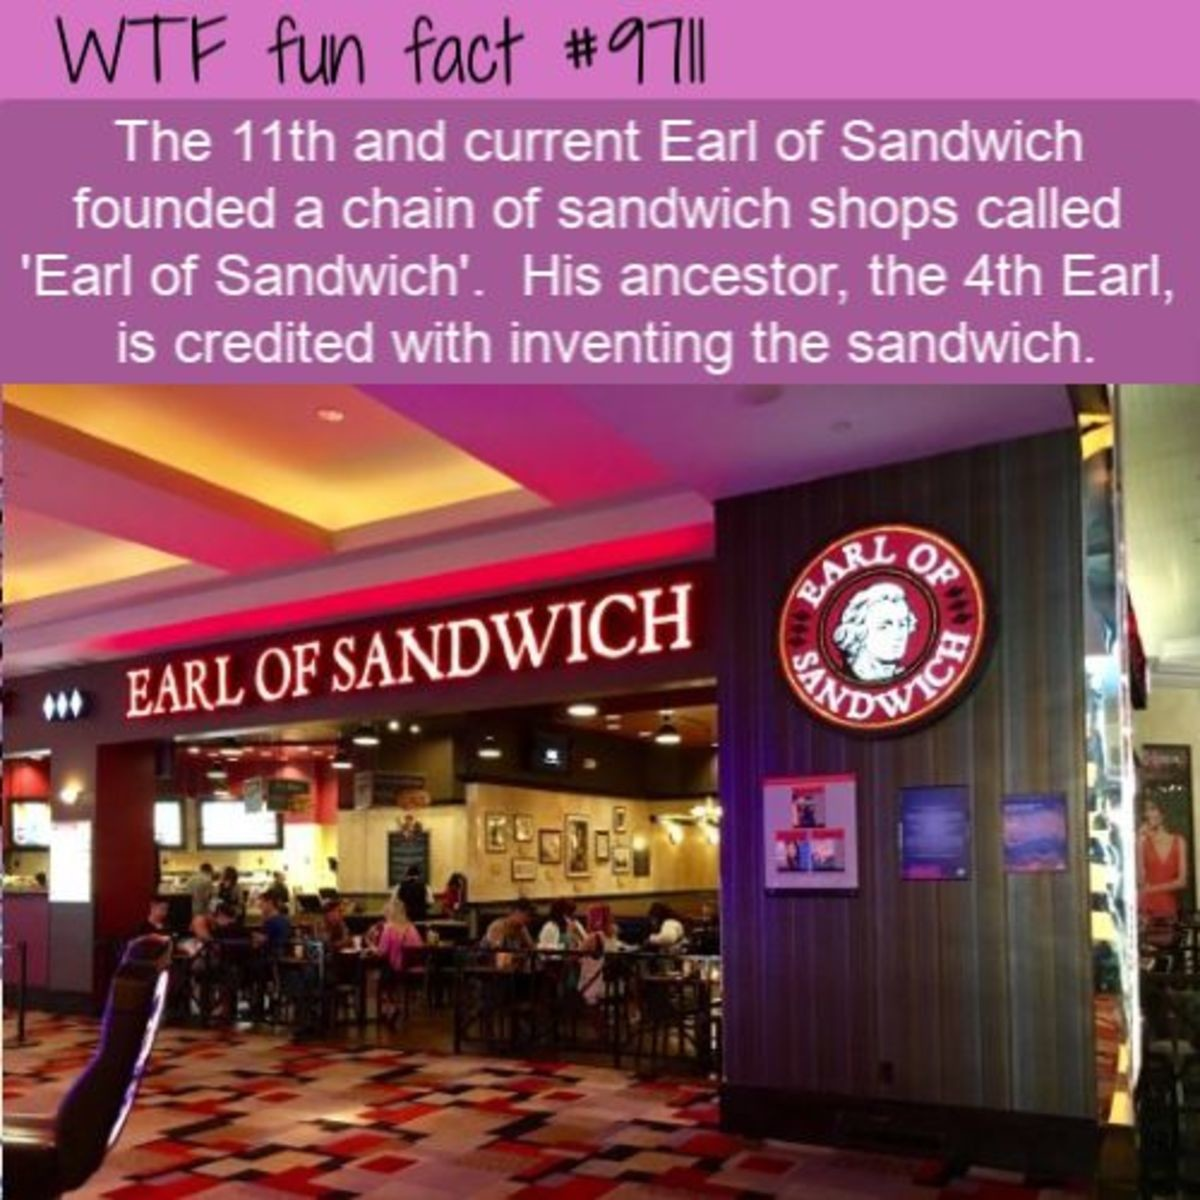 The Sandwich Legacy. .. If you've never been, they actually do make -very- good sammiches at these places, only ever encountered them in airports and in Disney world though